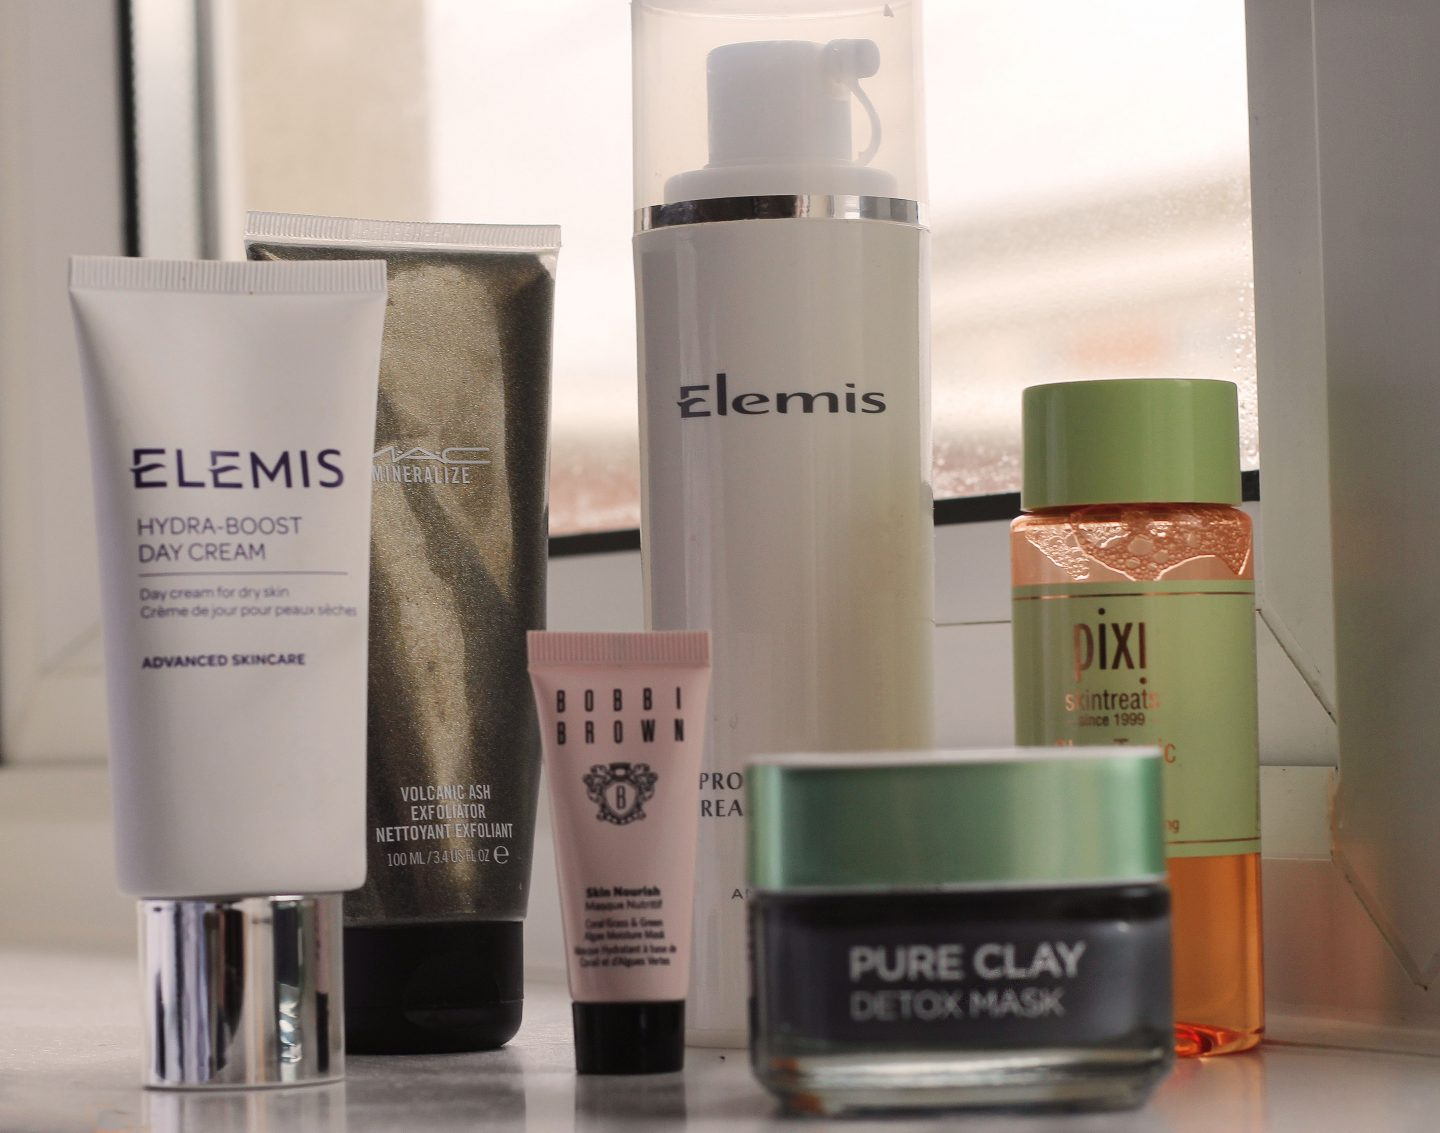 Night out skincare routine